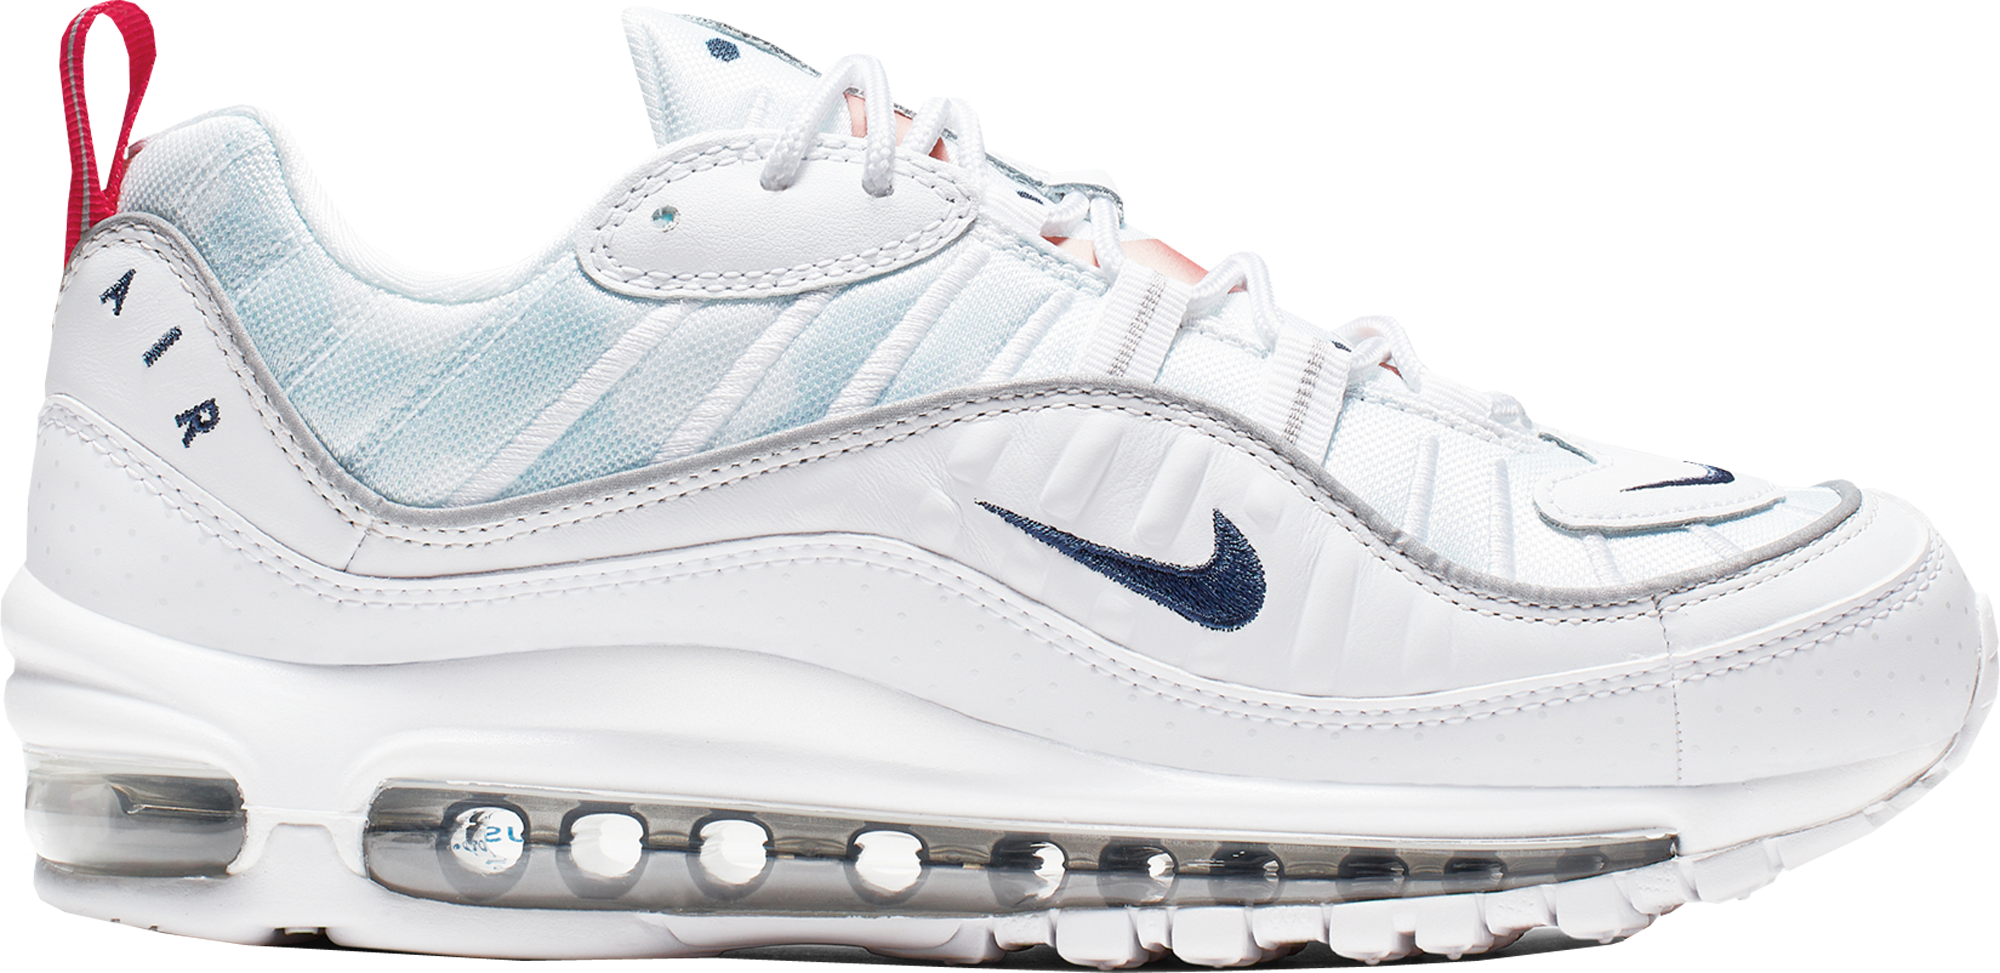 Air Max 98 Unite Totale White (W)